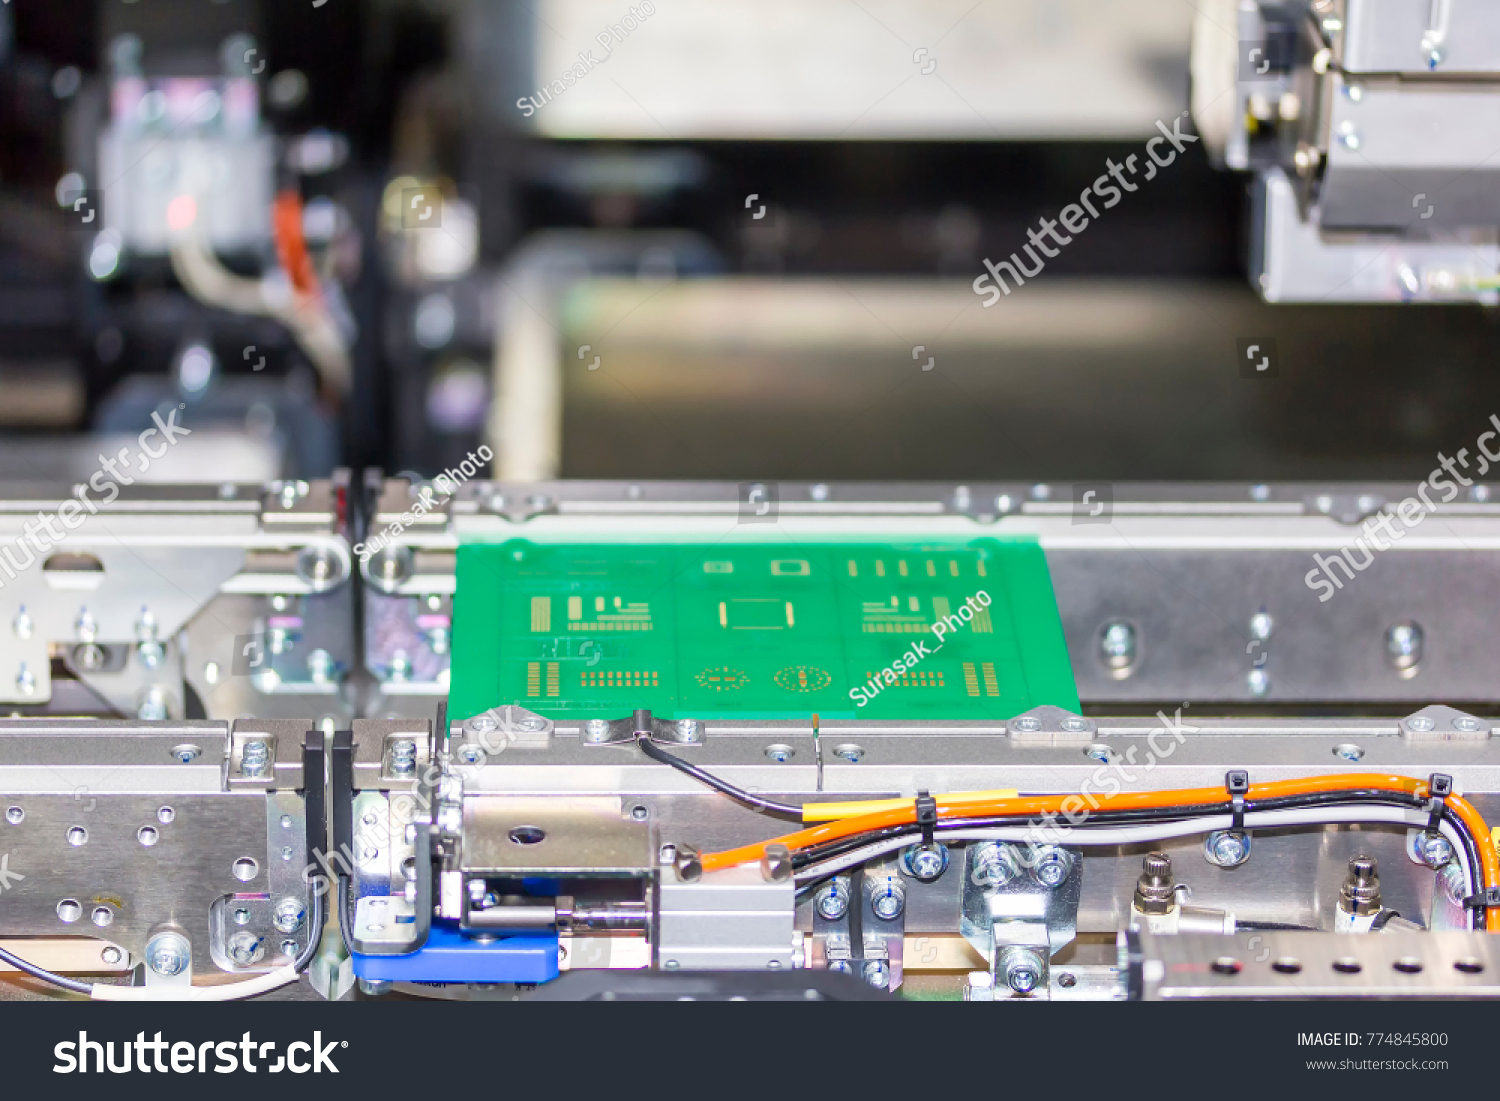 Close Print Circuit Board Pcb On Stock Photo Edit Now 774845800 Completely Assembled Printed Up Conveyor Of Led Smt Automatic Pick